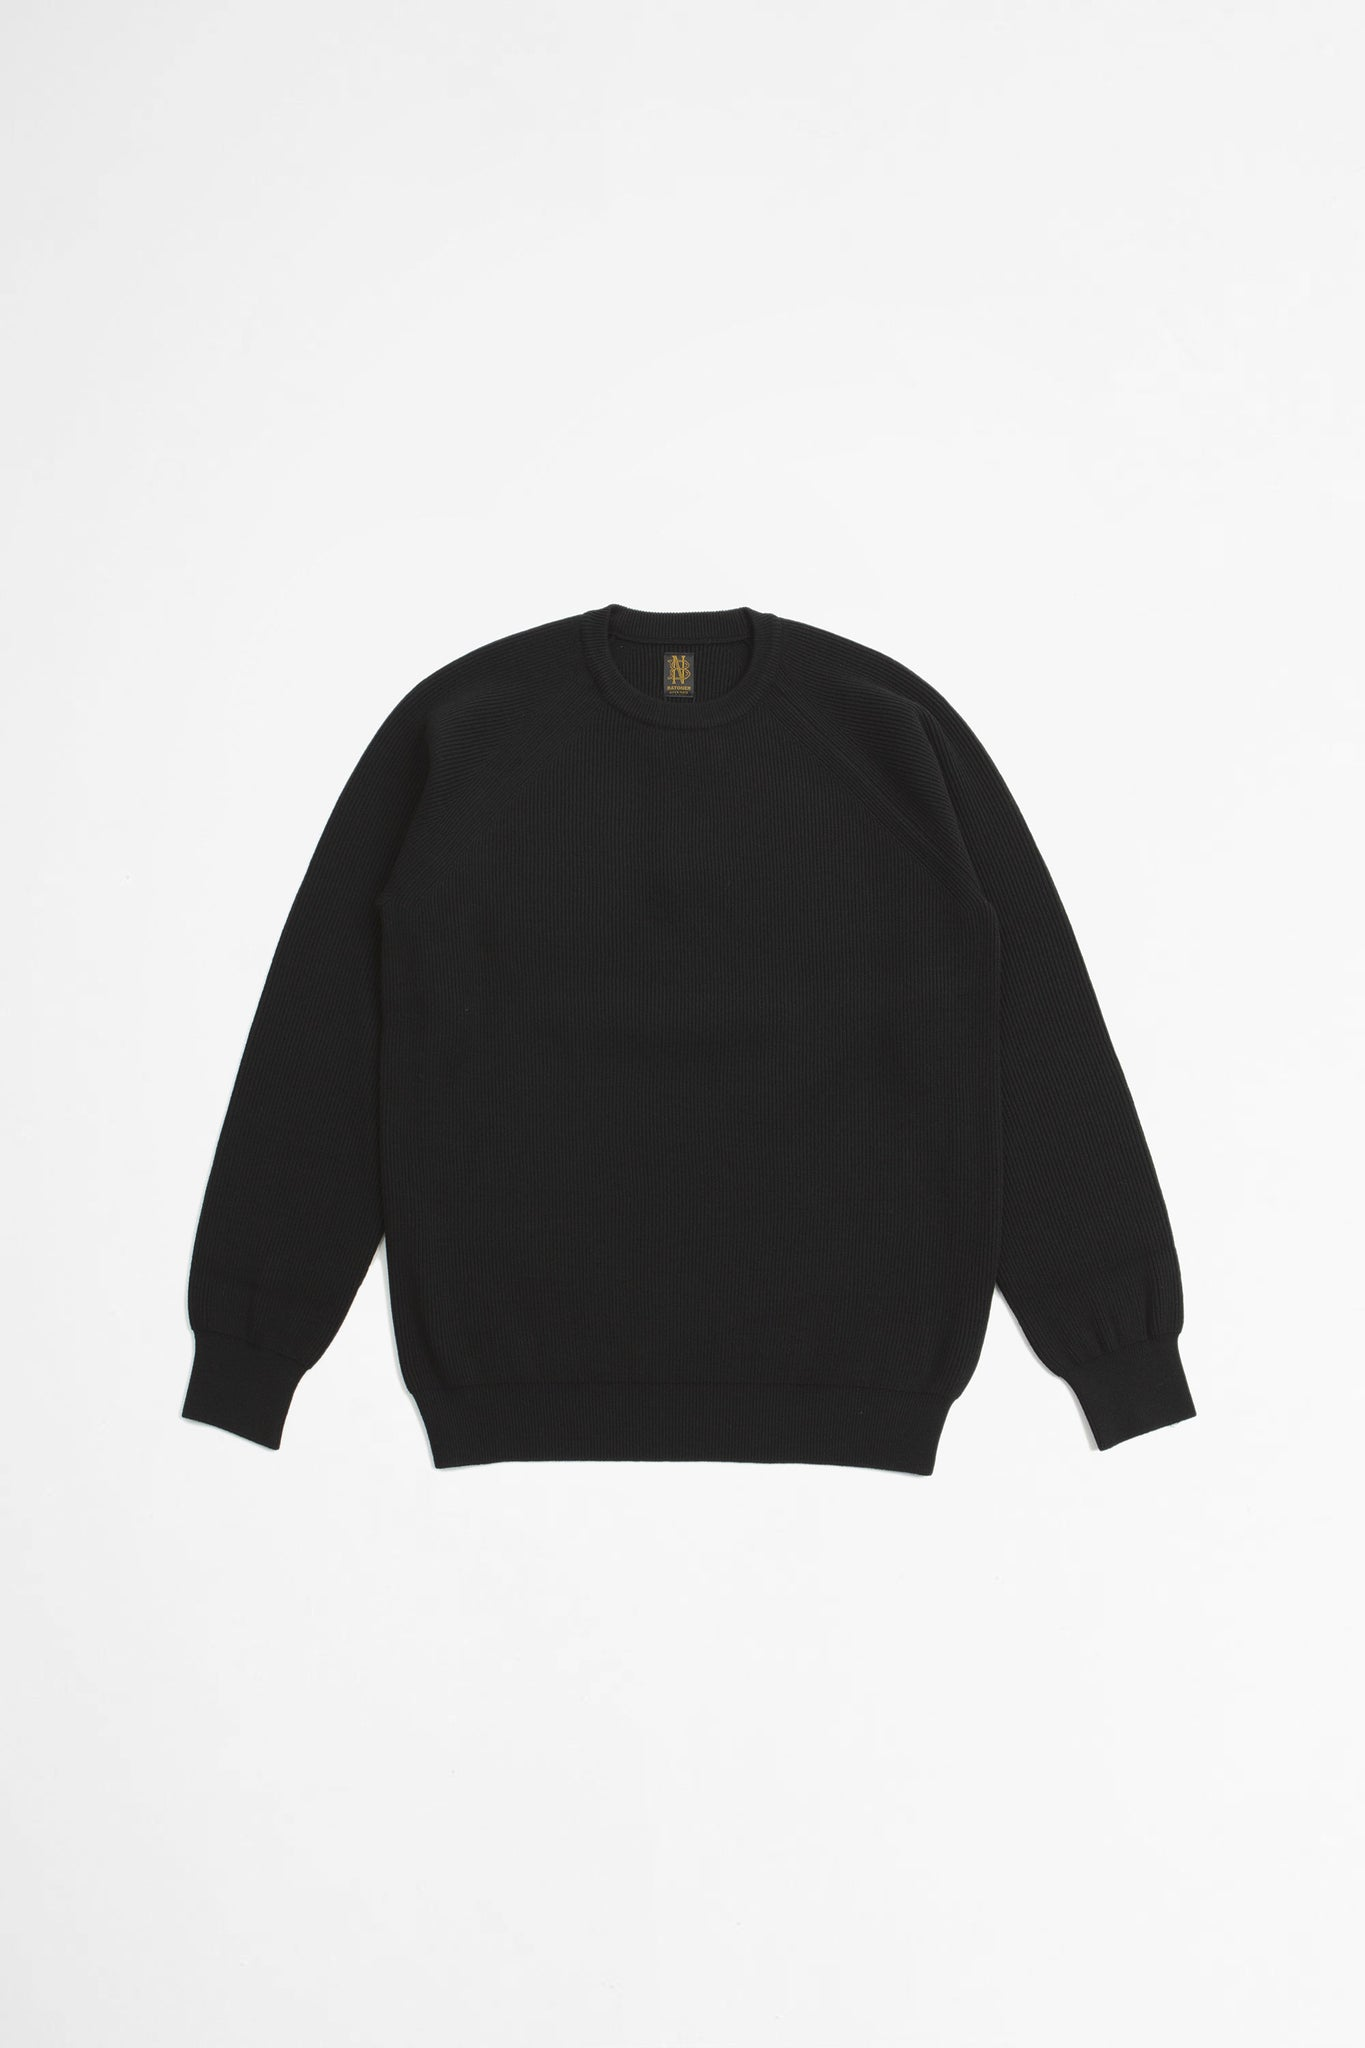 Hightwist wool crew neck black